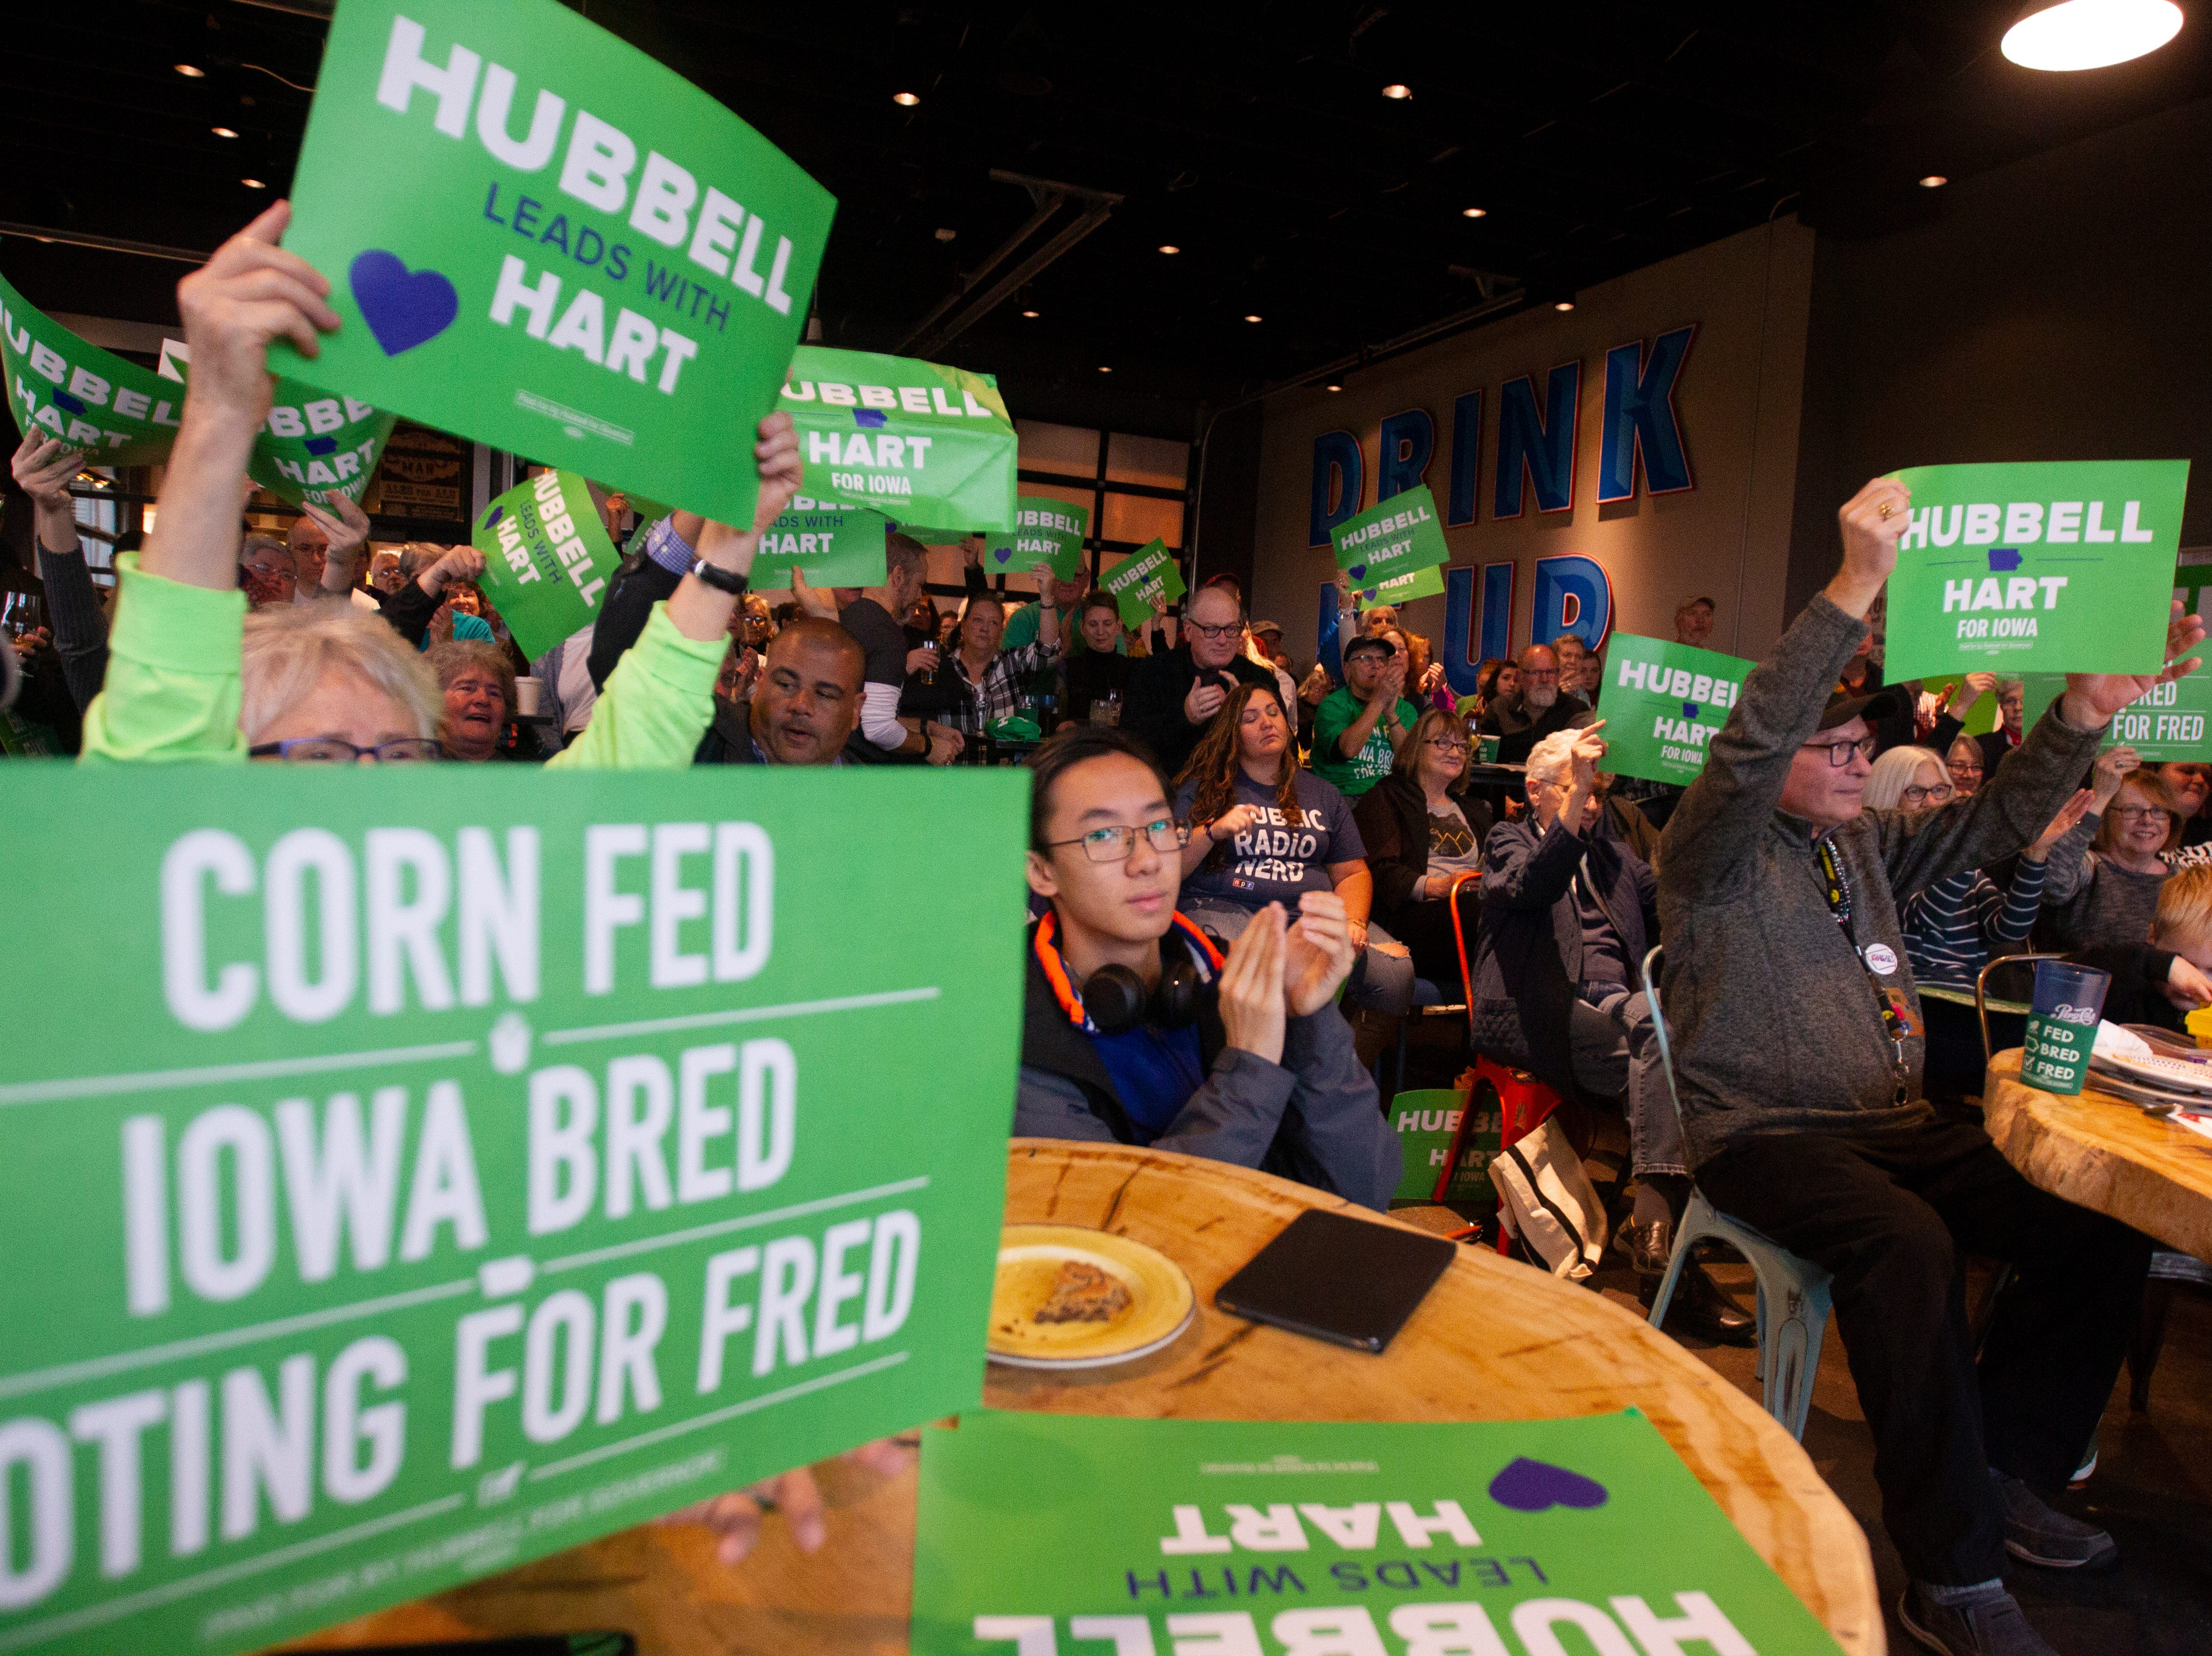 Supporters cheer as Fred Hubbell, Iowa Democratic candidate for governor, speaks during a rally on Sunday, Nov. 4, 2018, at Big Grove Brewery in Iowa City.